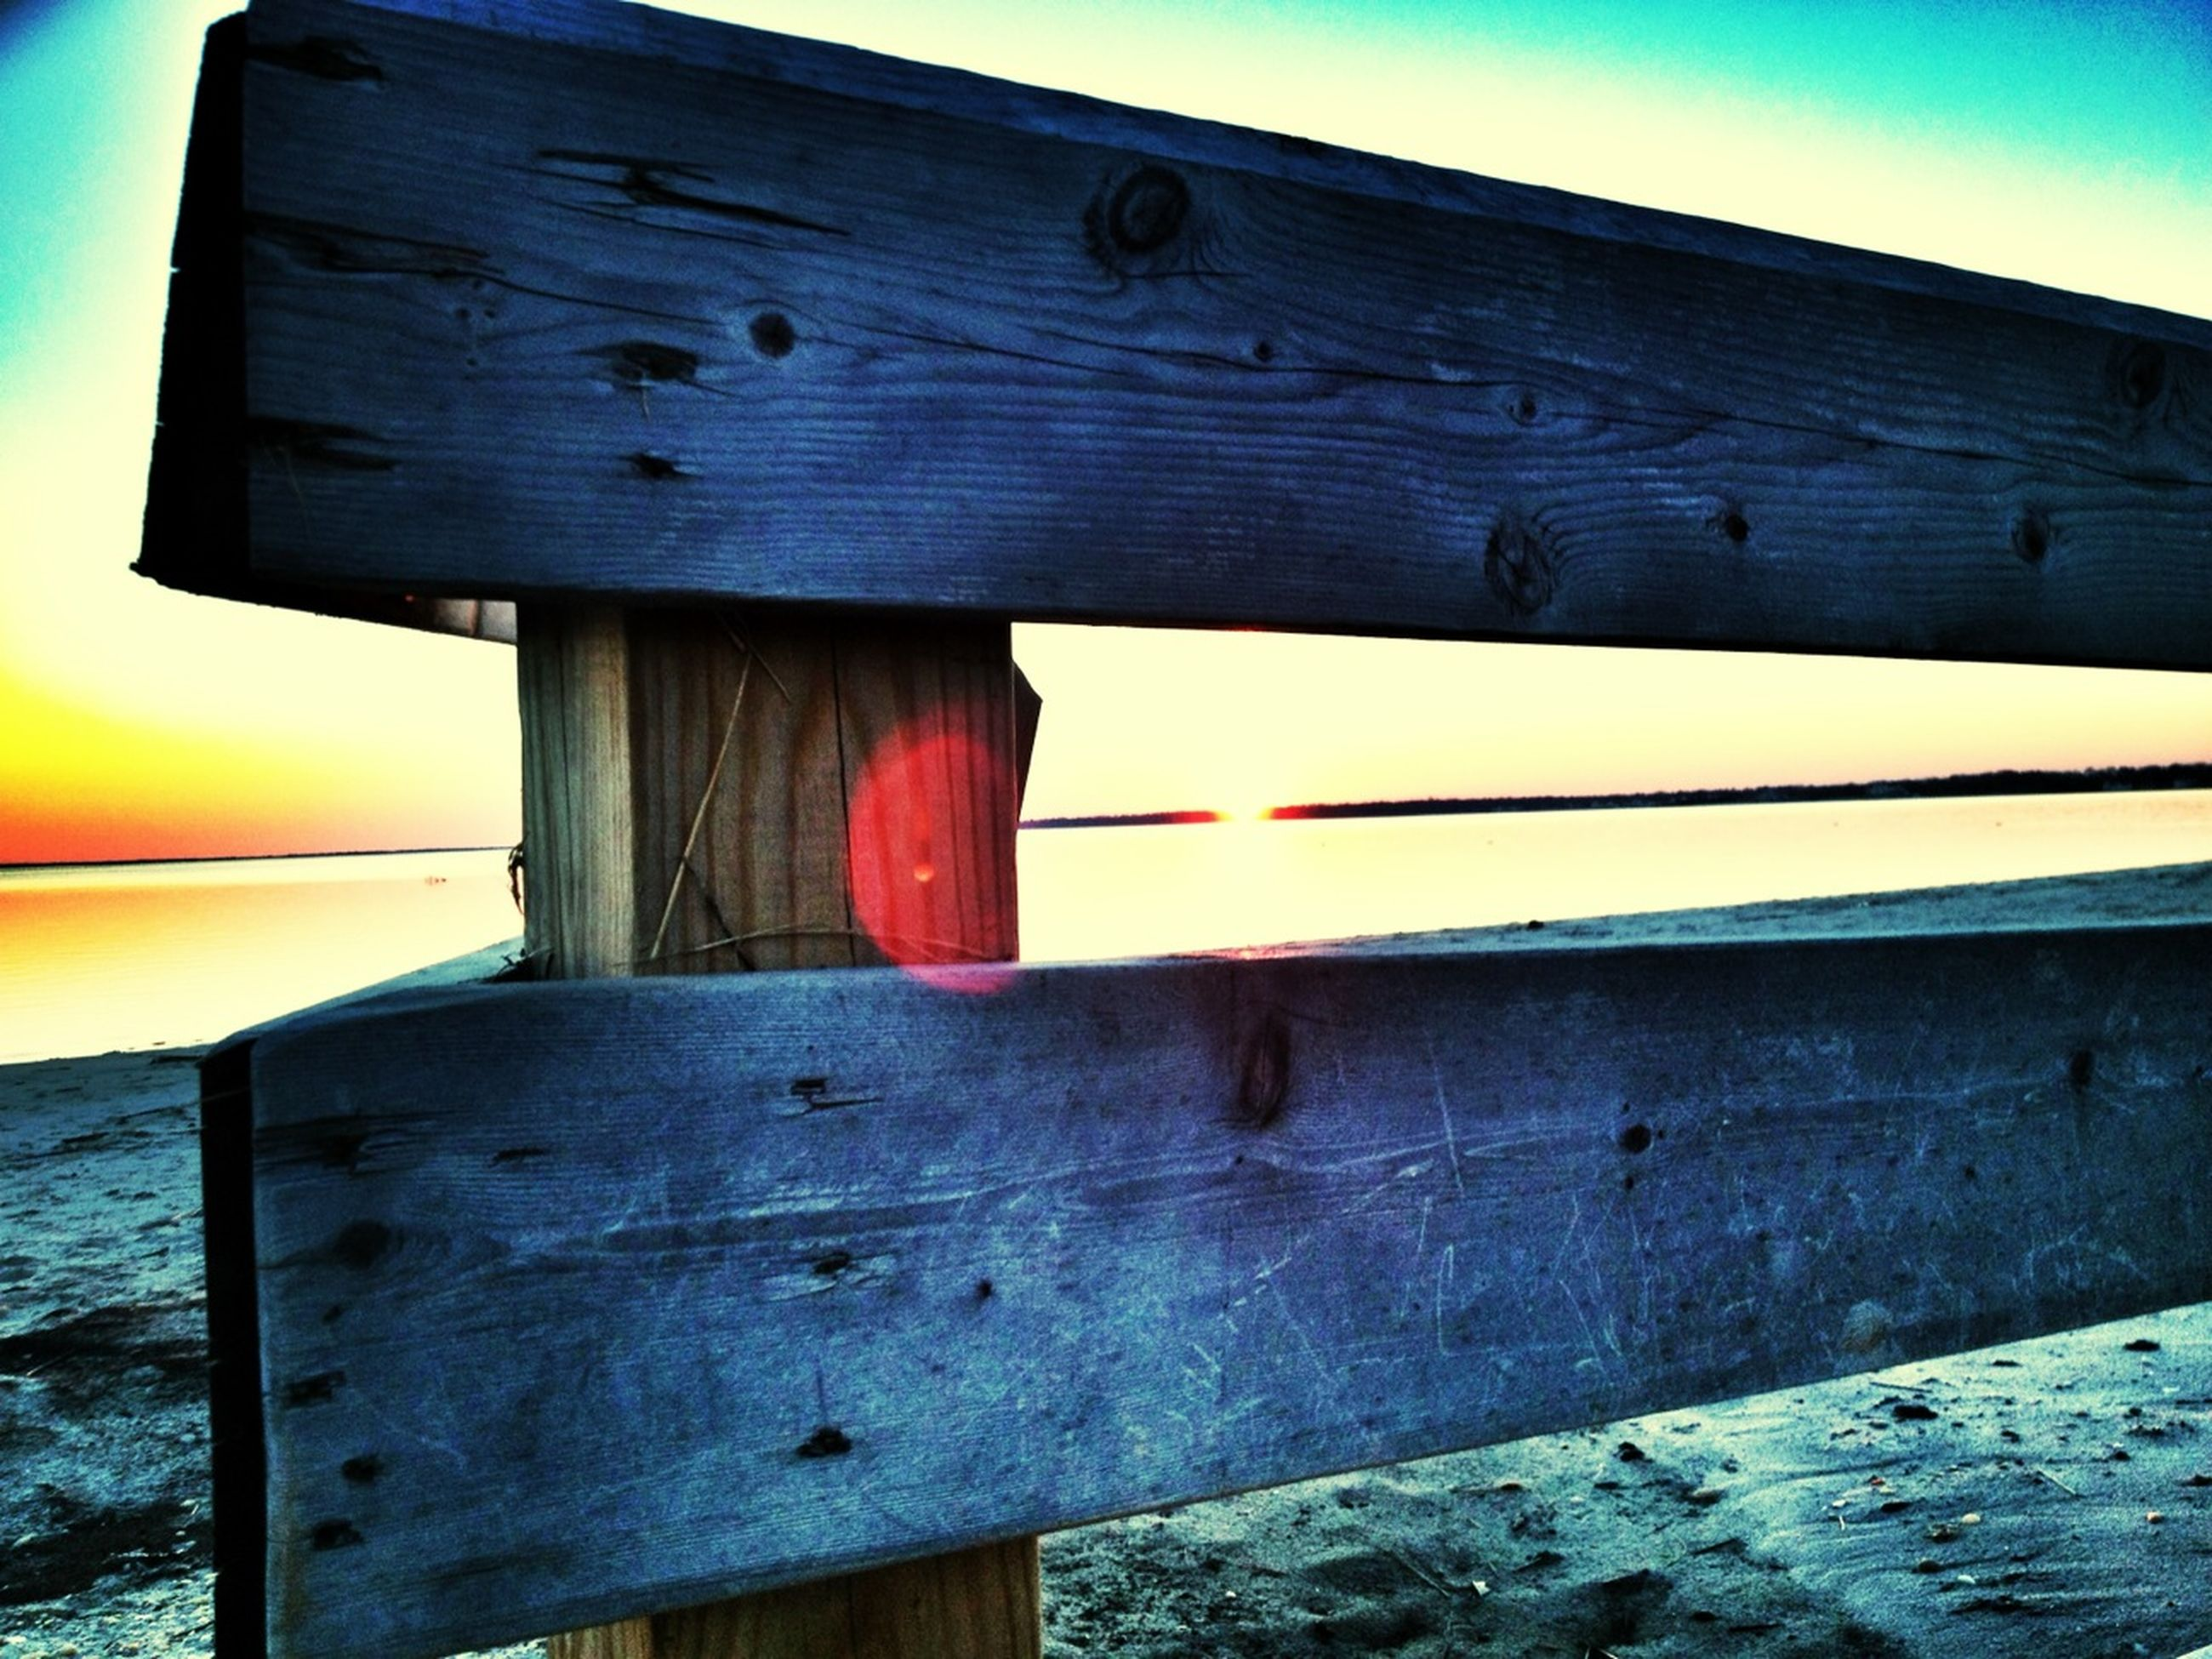 built structure, architecture, building exterior, wood - material, blue, wooden, low angle view, safety, protection, weathered, railing, sky, yellow, outdoors, wood, no people, old, sea, house, security